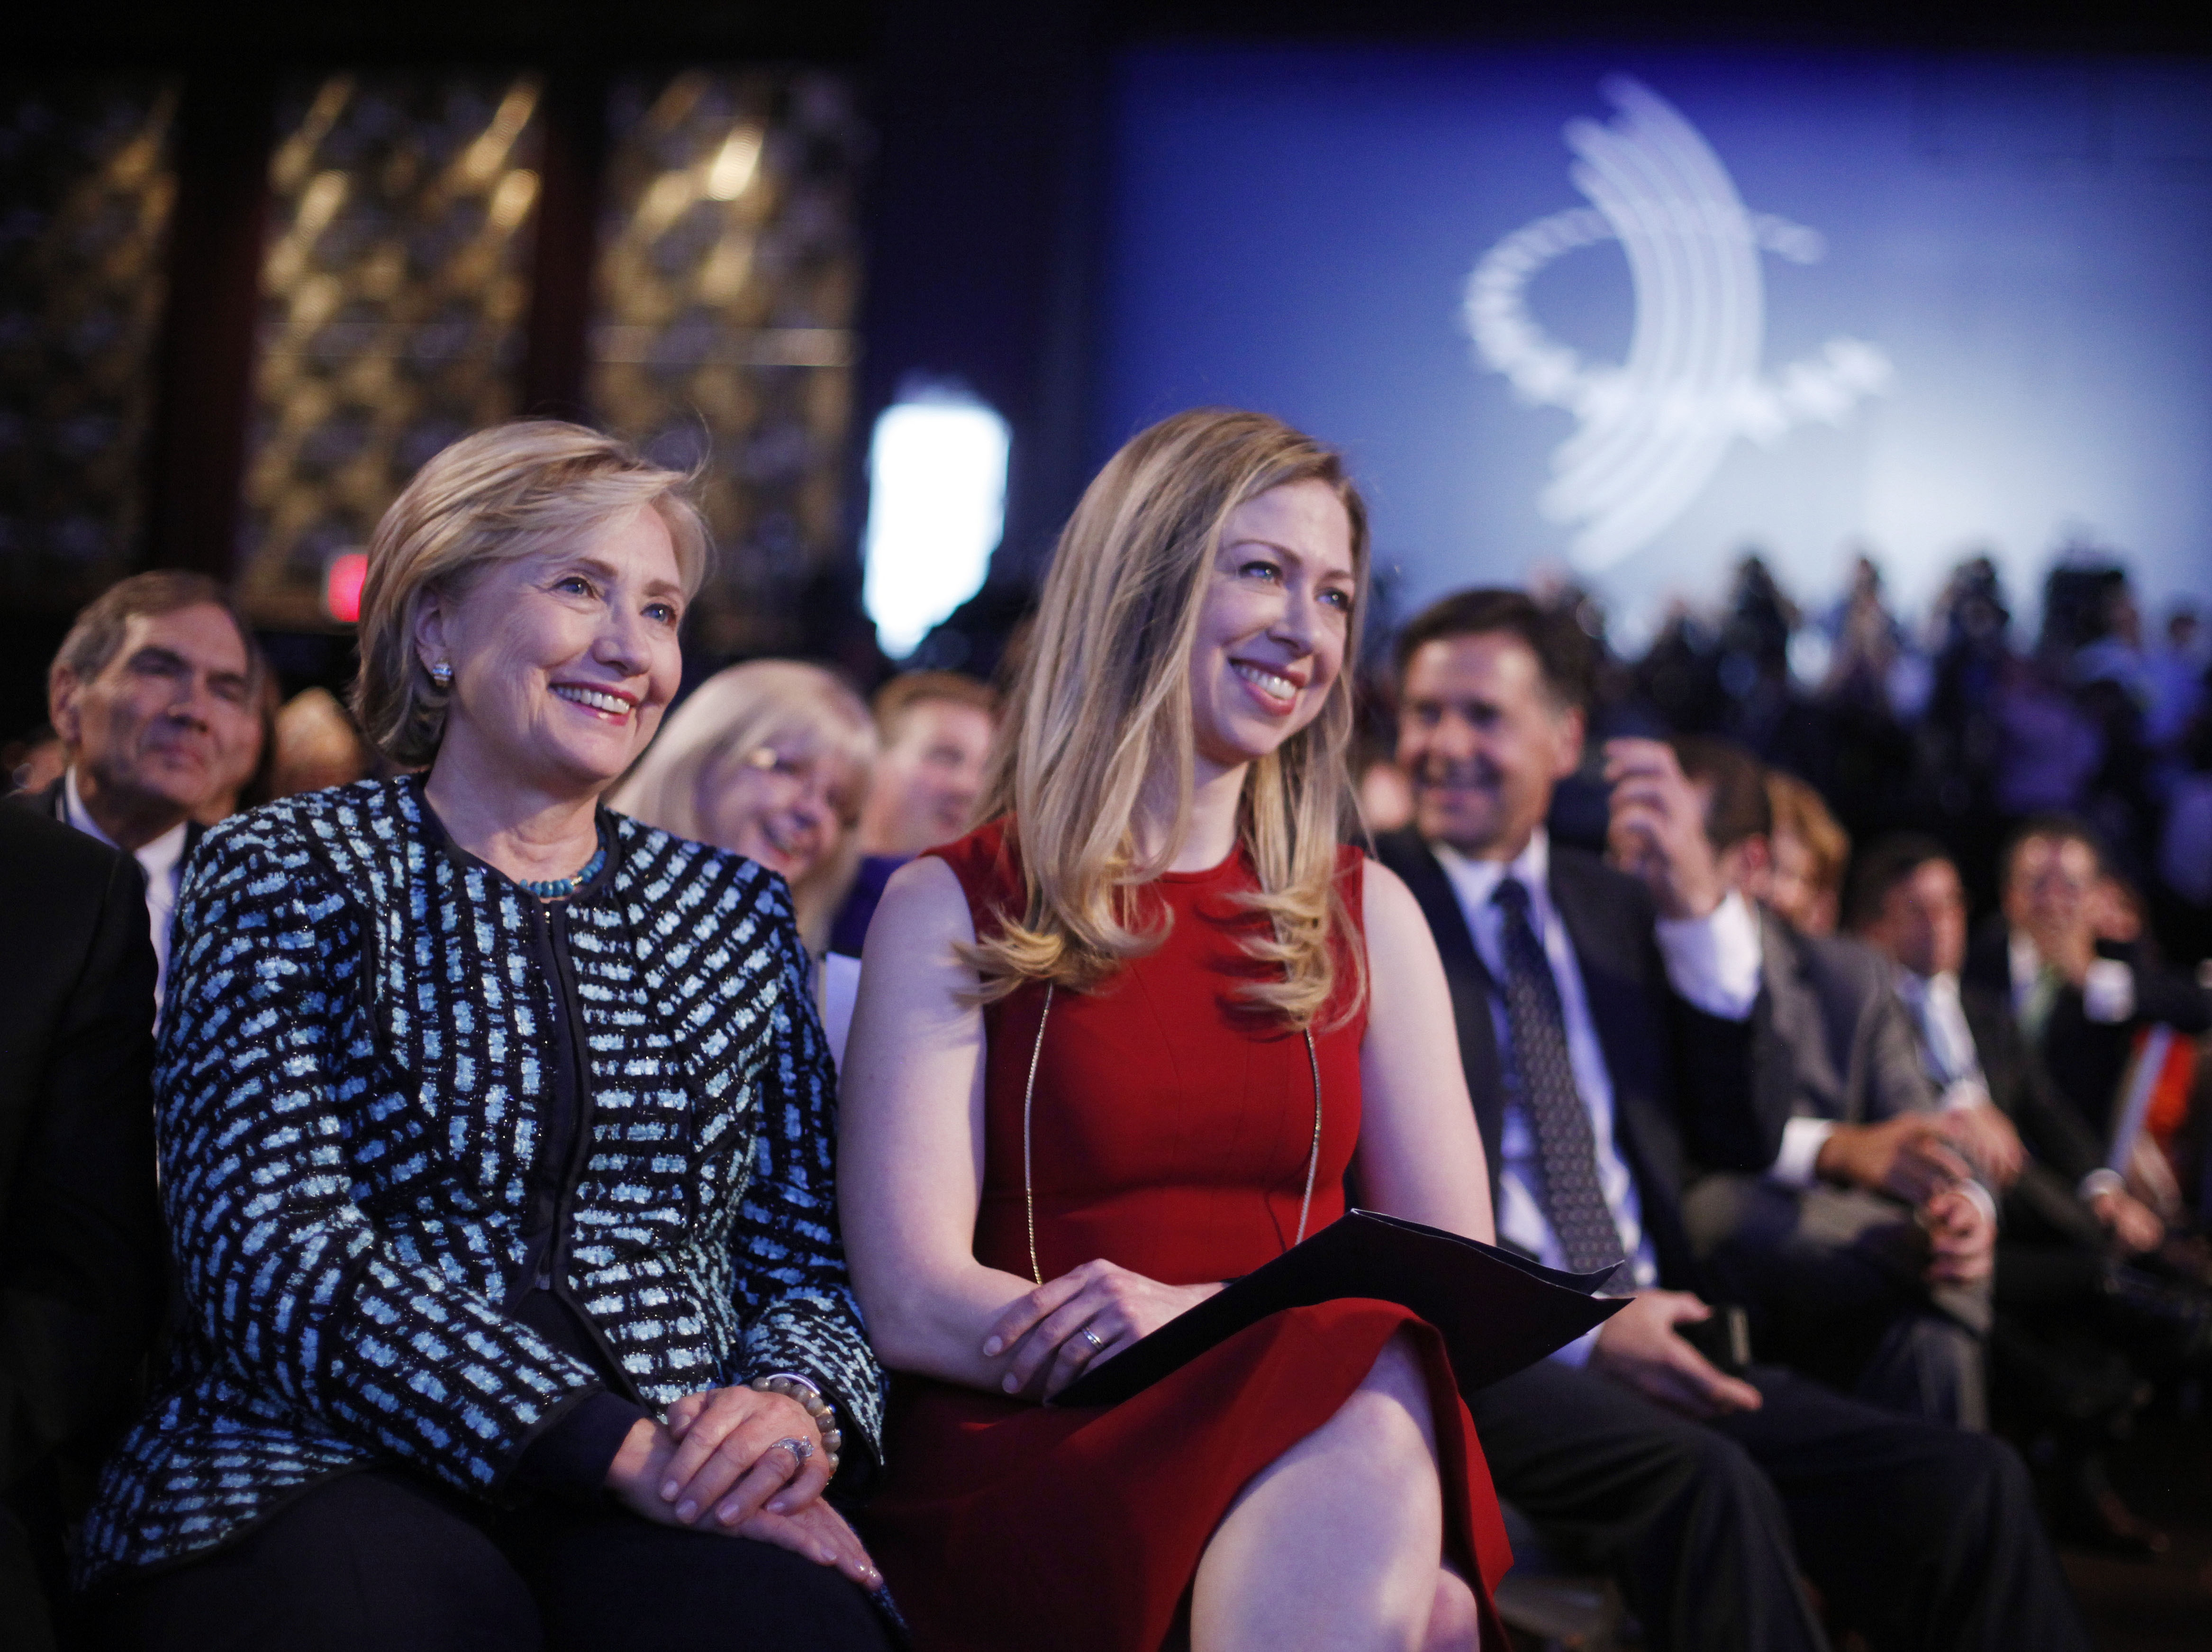 With philanthropy, the Affordable Care Act and the 2016 political picture all part of the mix, former Secretary of State Hillary Rodham Clinton and daughter Chelsea listen to President Obama and former President Bill Clinton last week during meeting of Clinton Global Initiative in New York City.